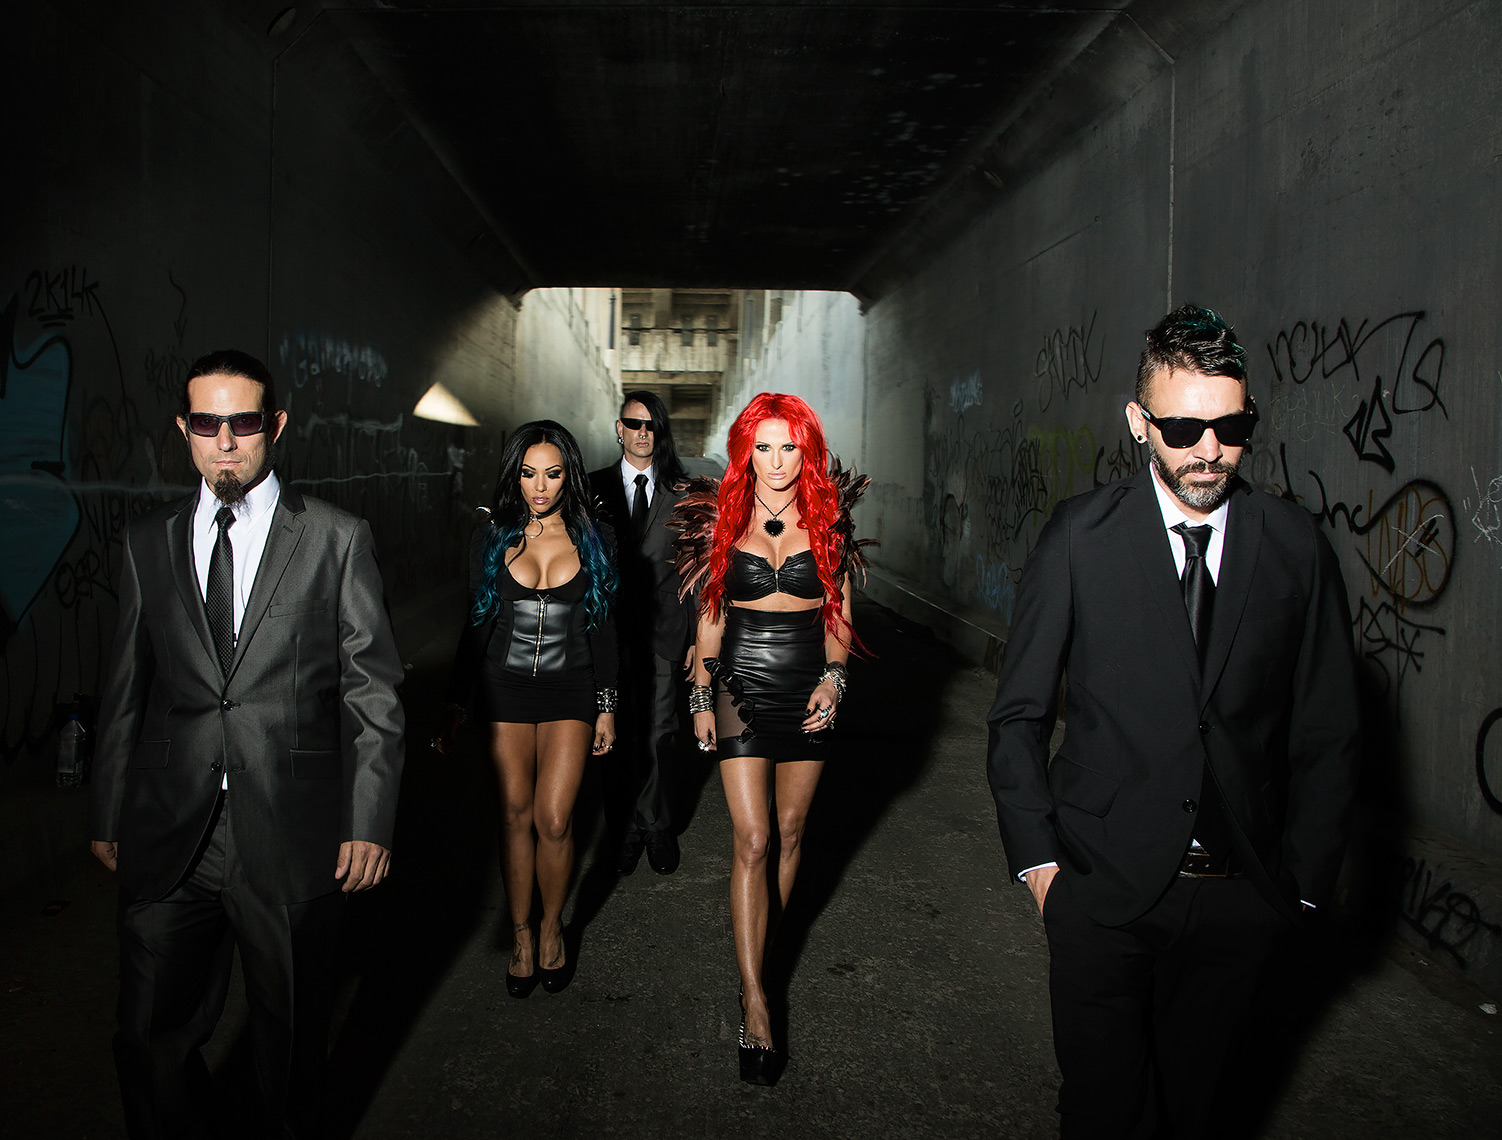 Shindov_ButcherBabies_0713